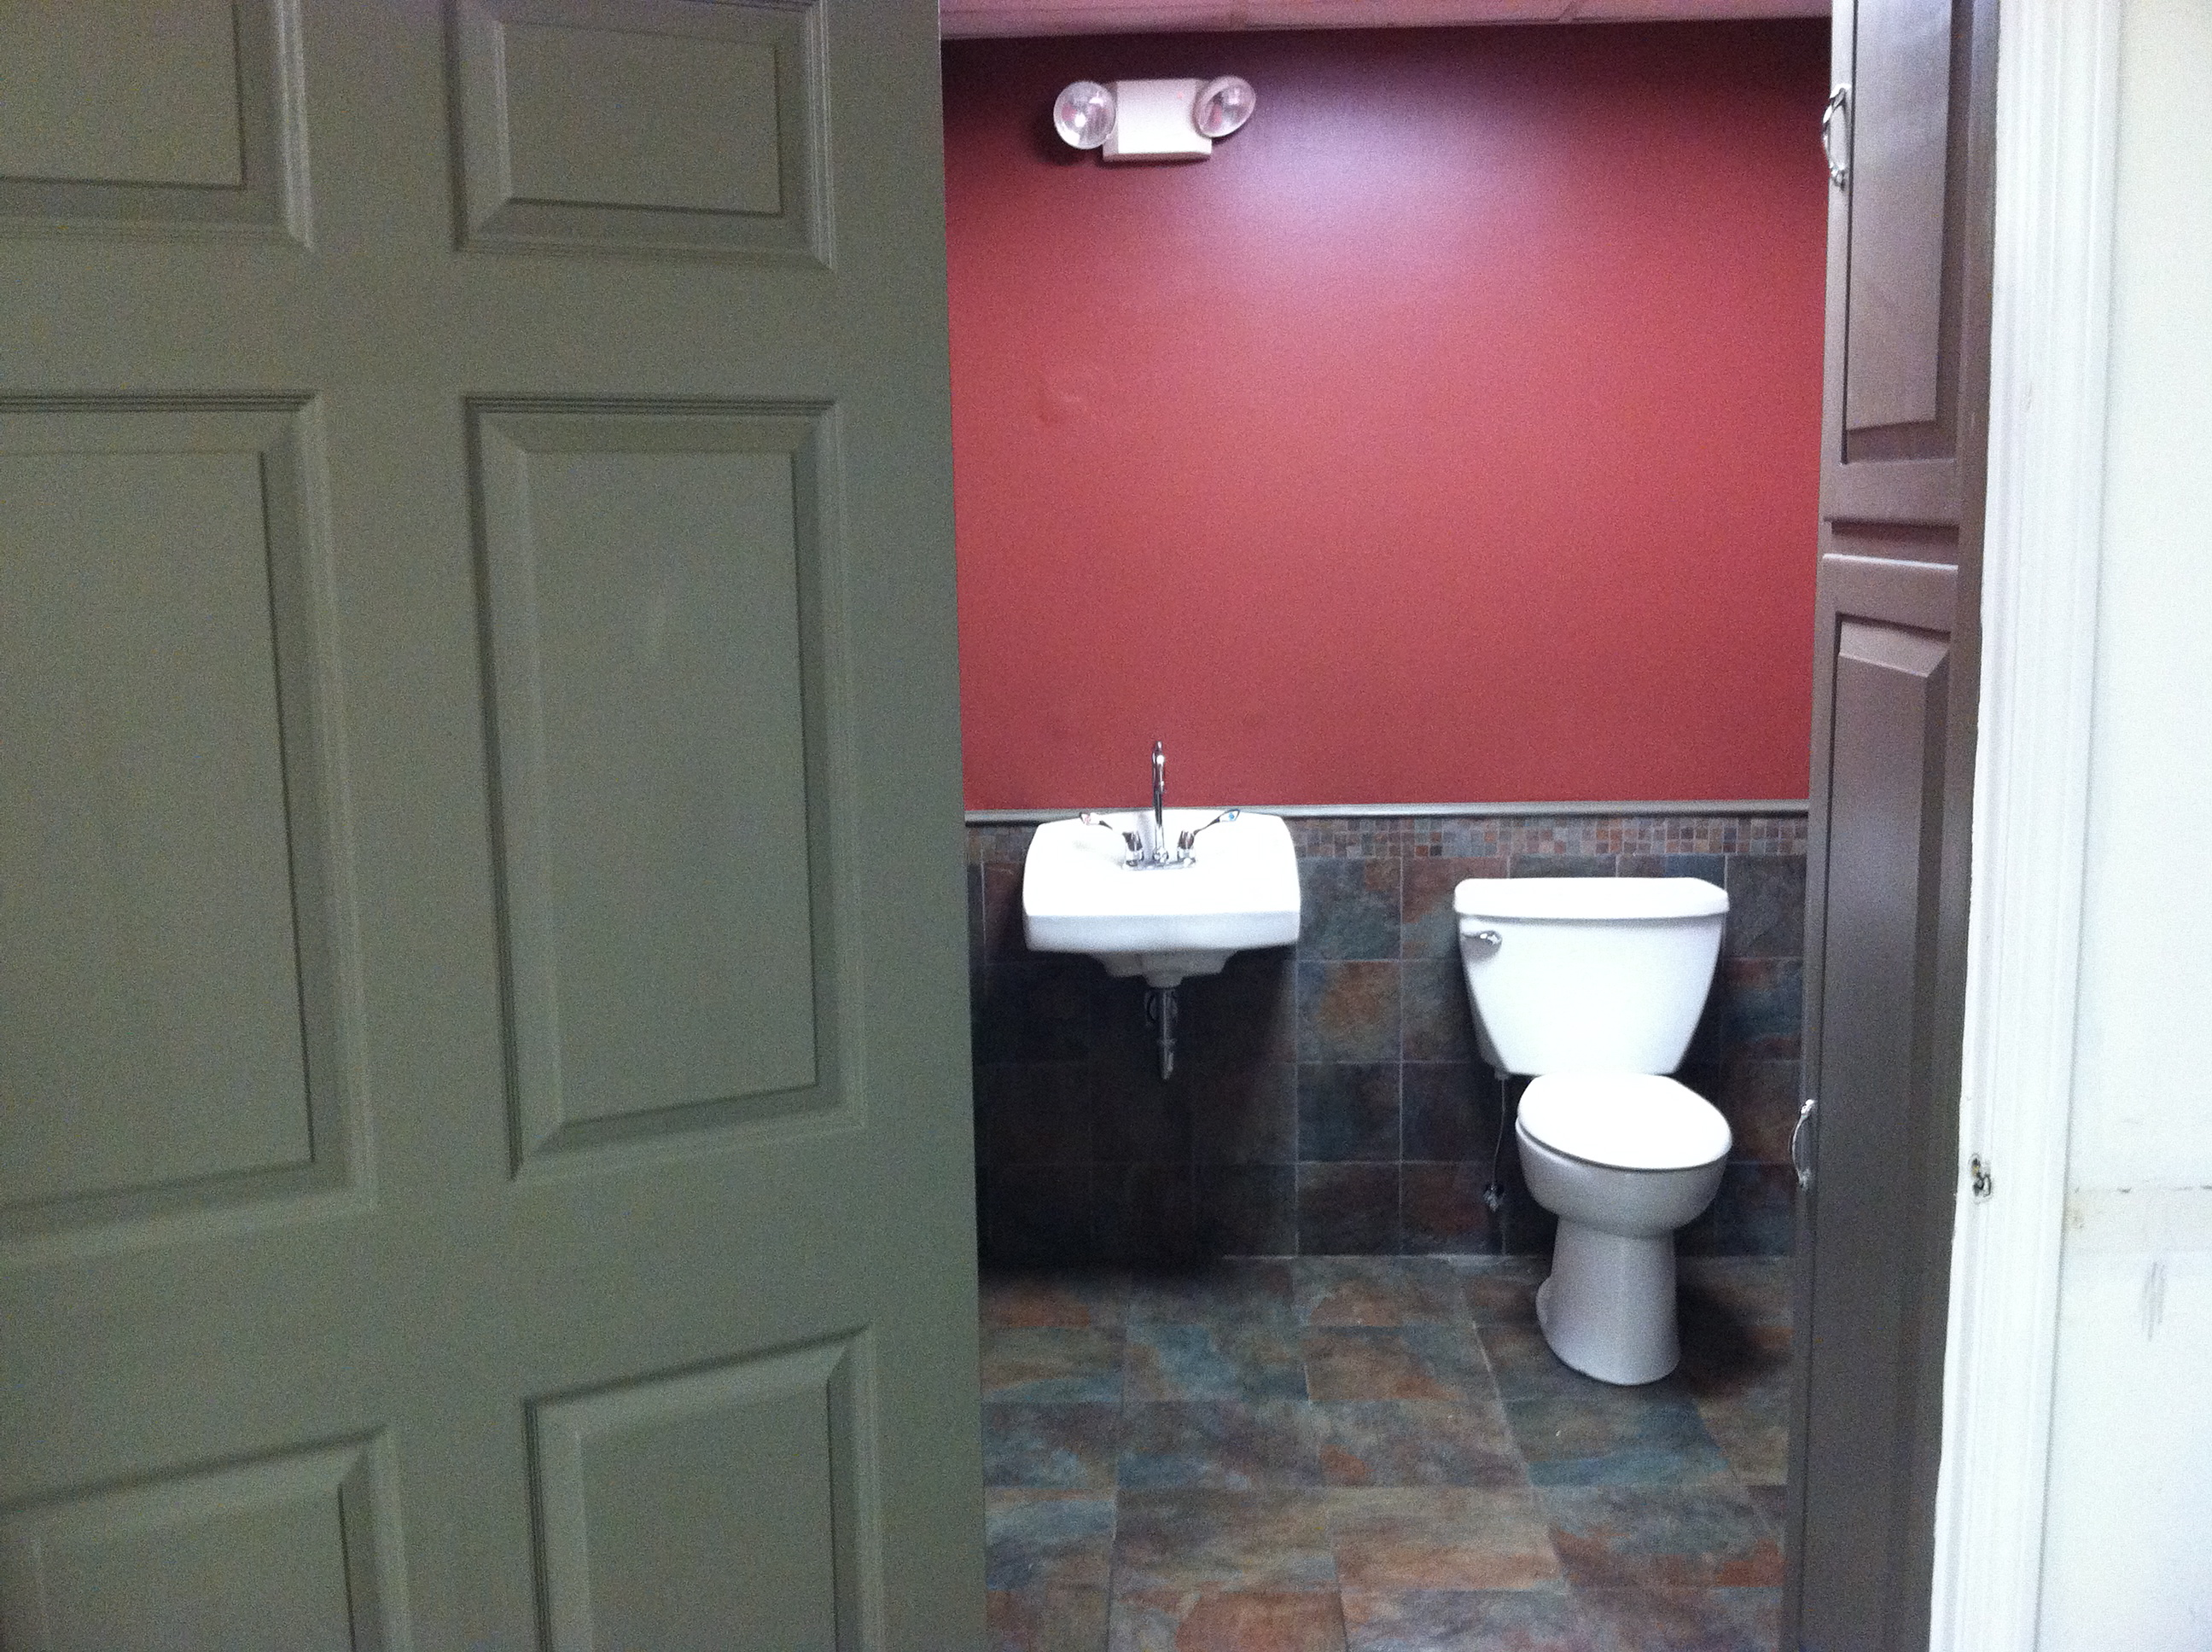 march 2 2011 at 2592 1936 in new ada bathroom in bedford nh